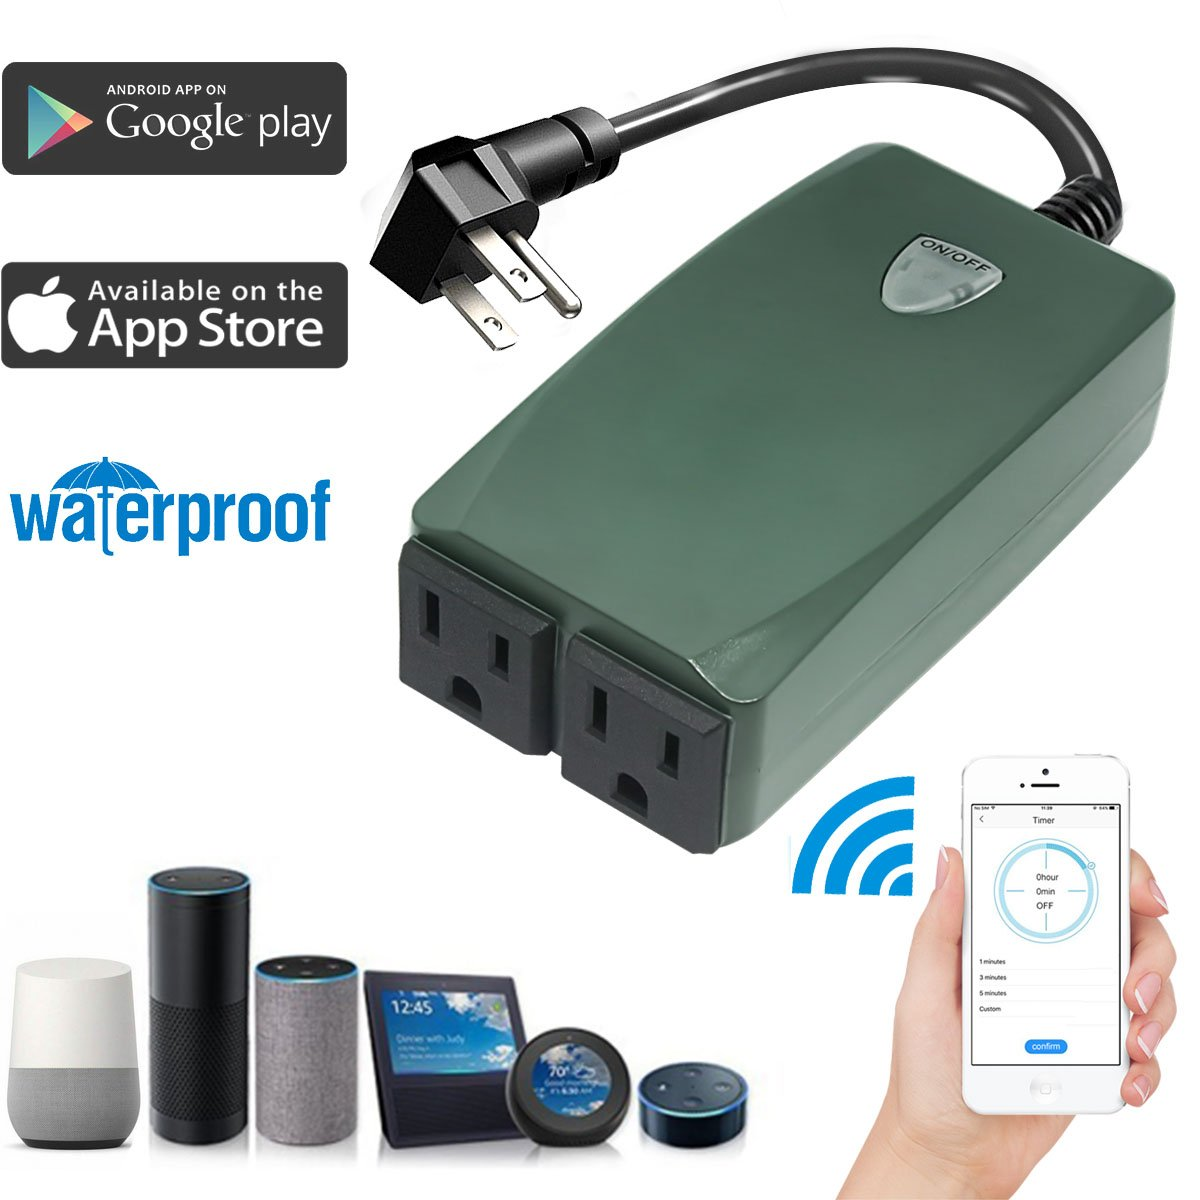 JRSOKO Wireless Wifi Outlet Compatible with Alexa, Dual Waterproof Outlets,Wireless Smart Outdoor Switch Socket Plug Outlet Timer Control By Smartphone,No Hub Required(Green)